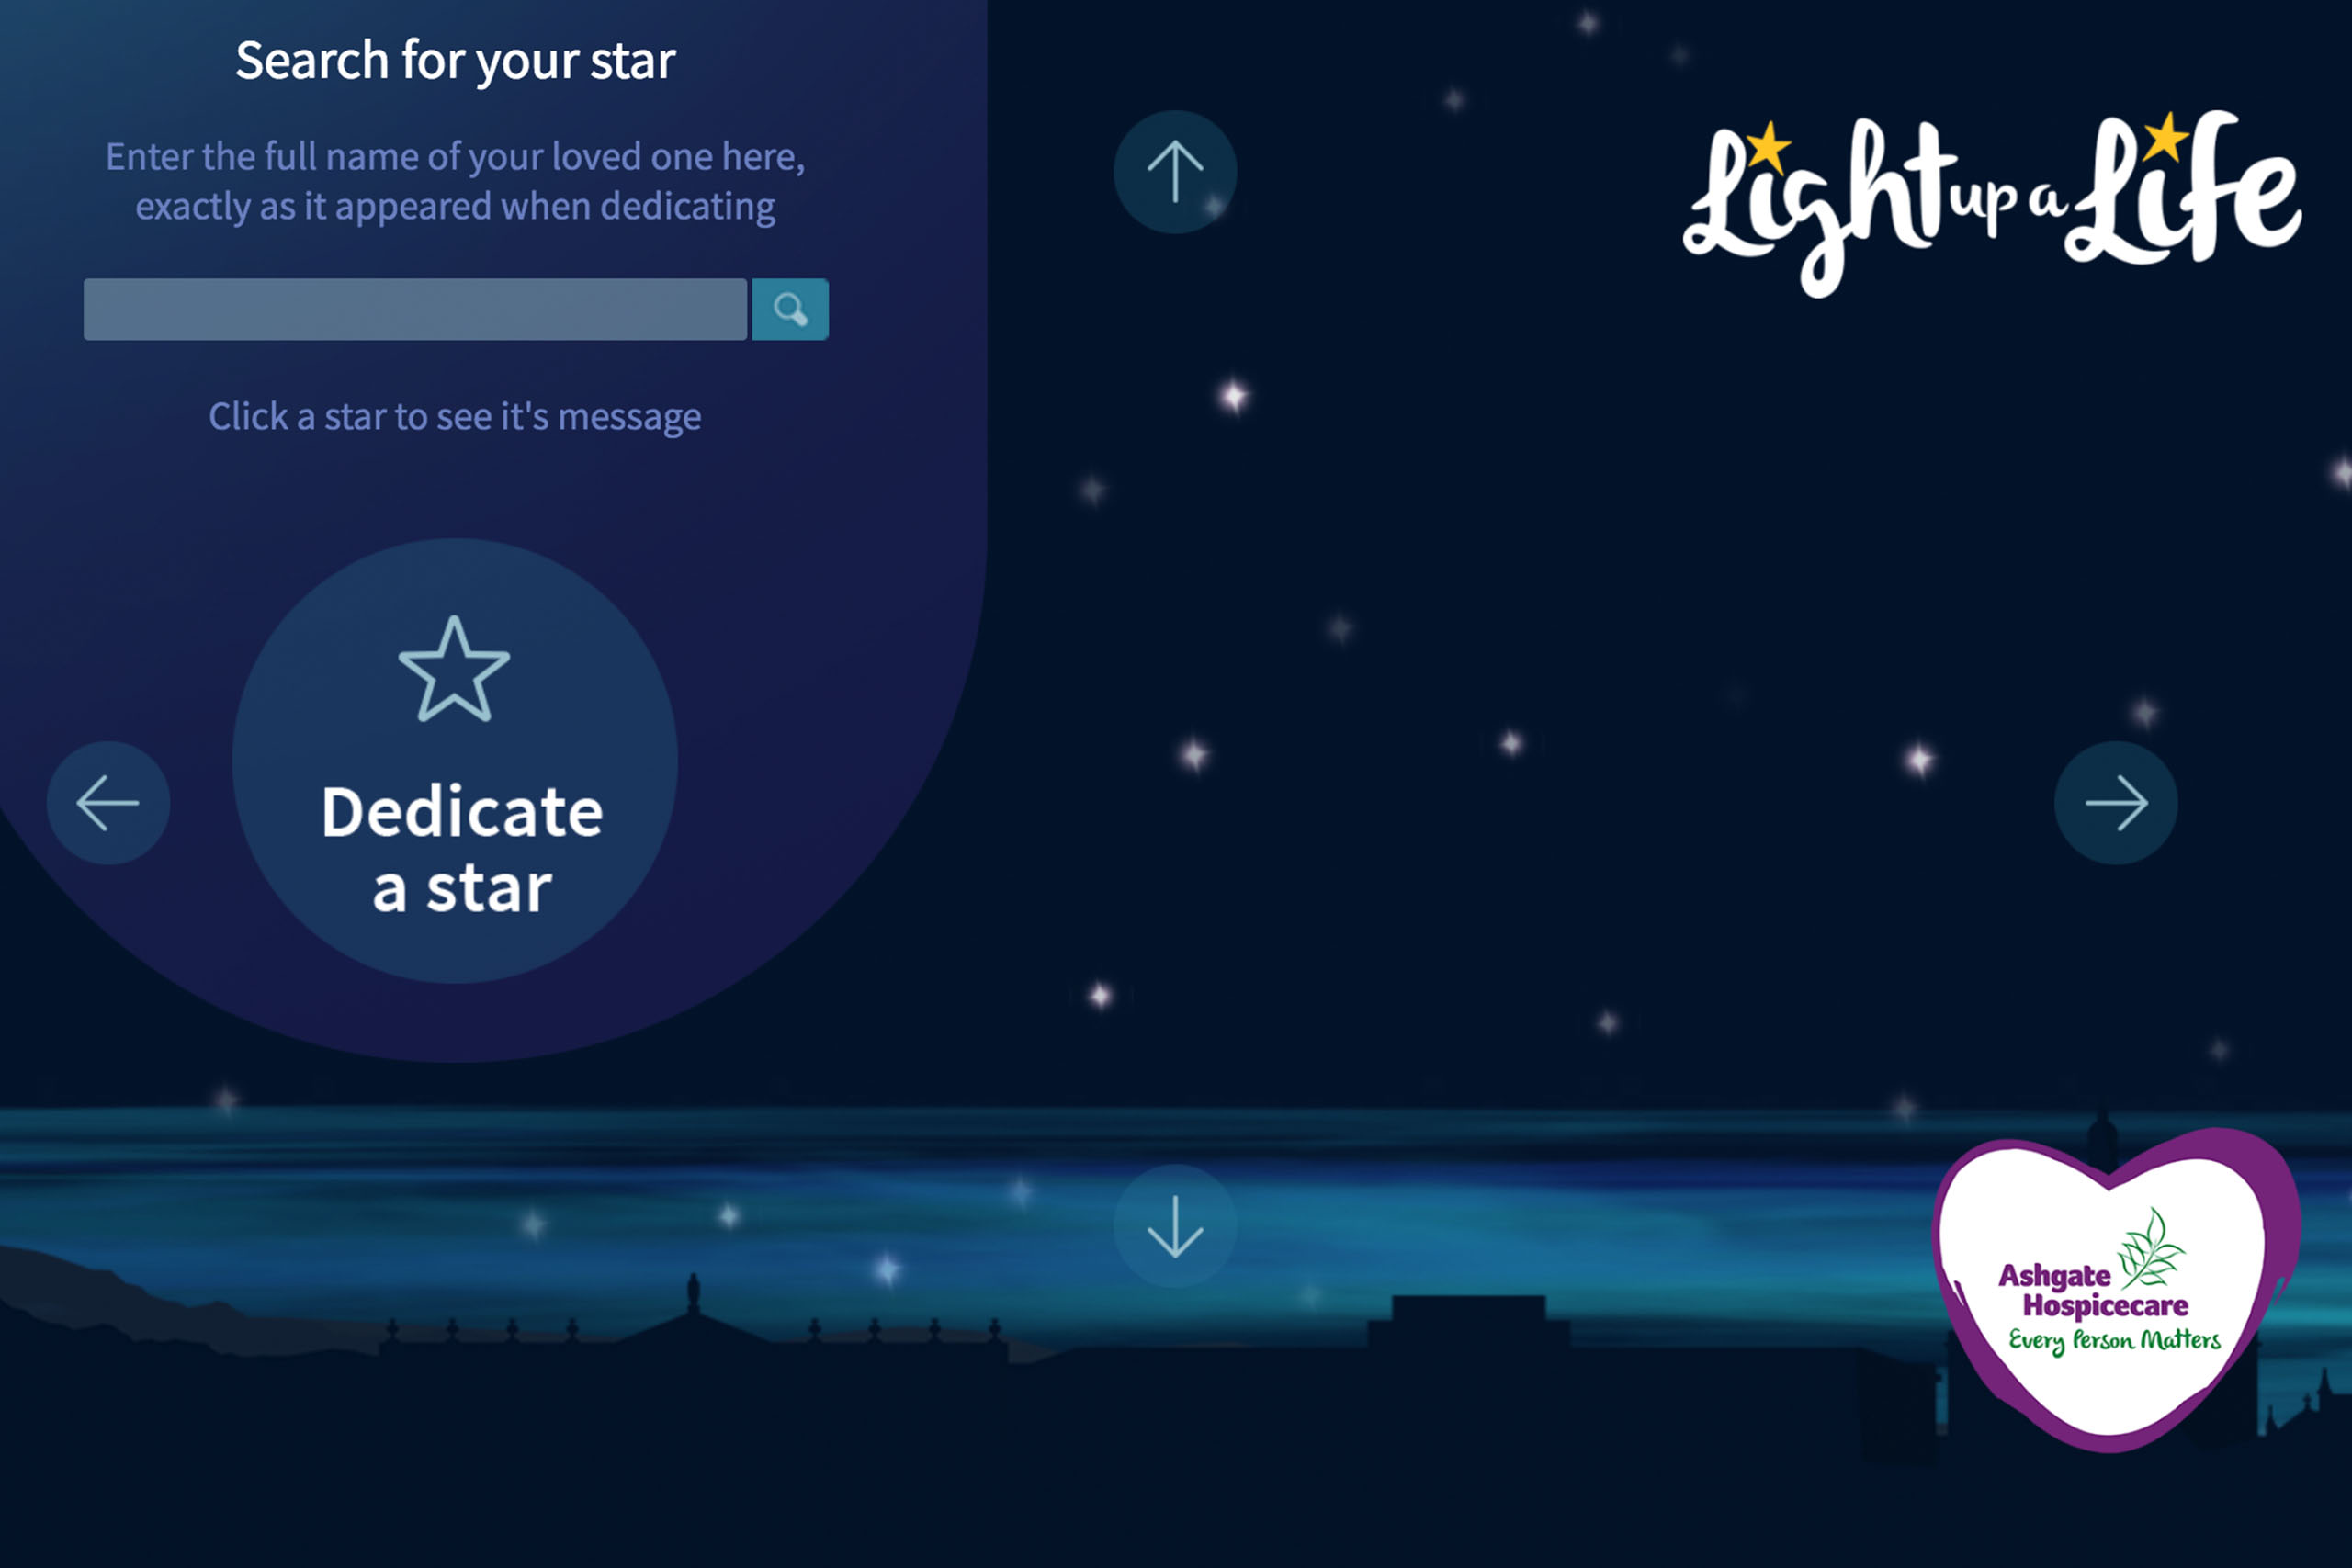 A meaningful website for Light Up A Life